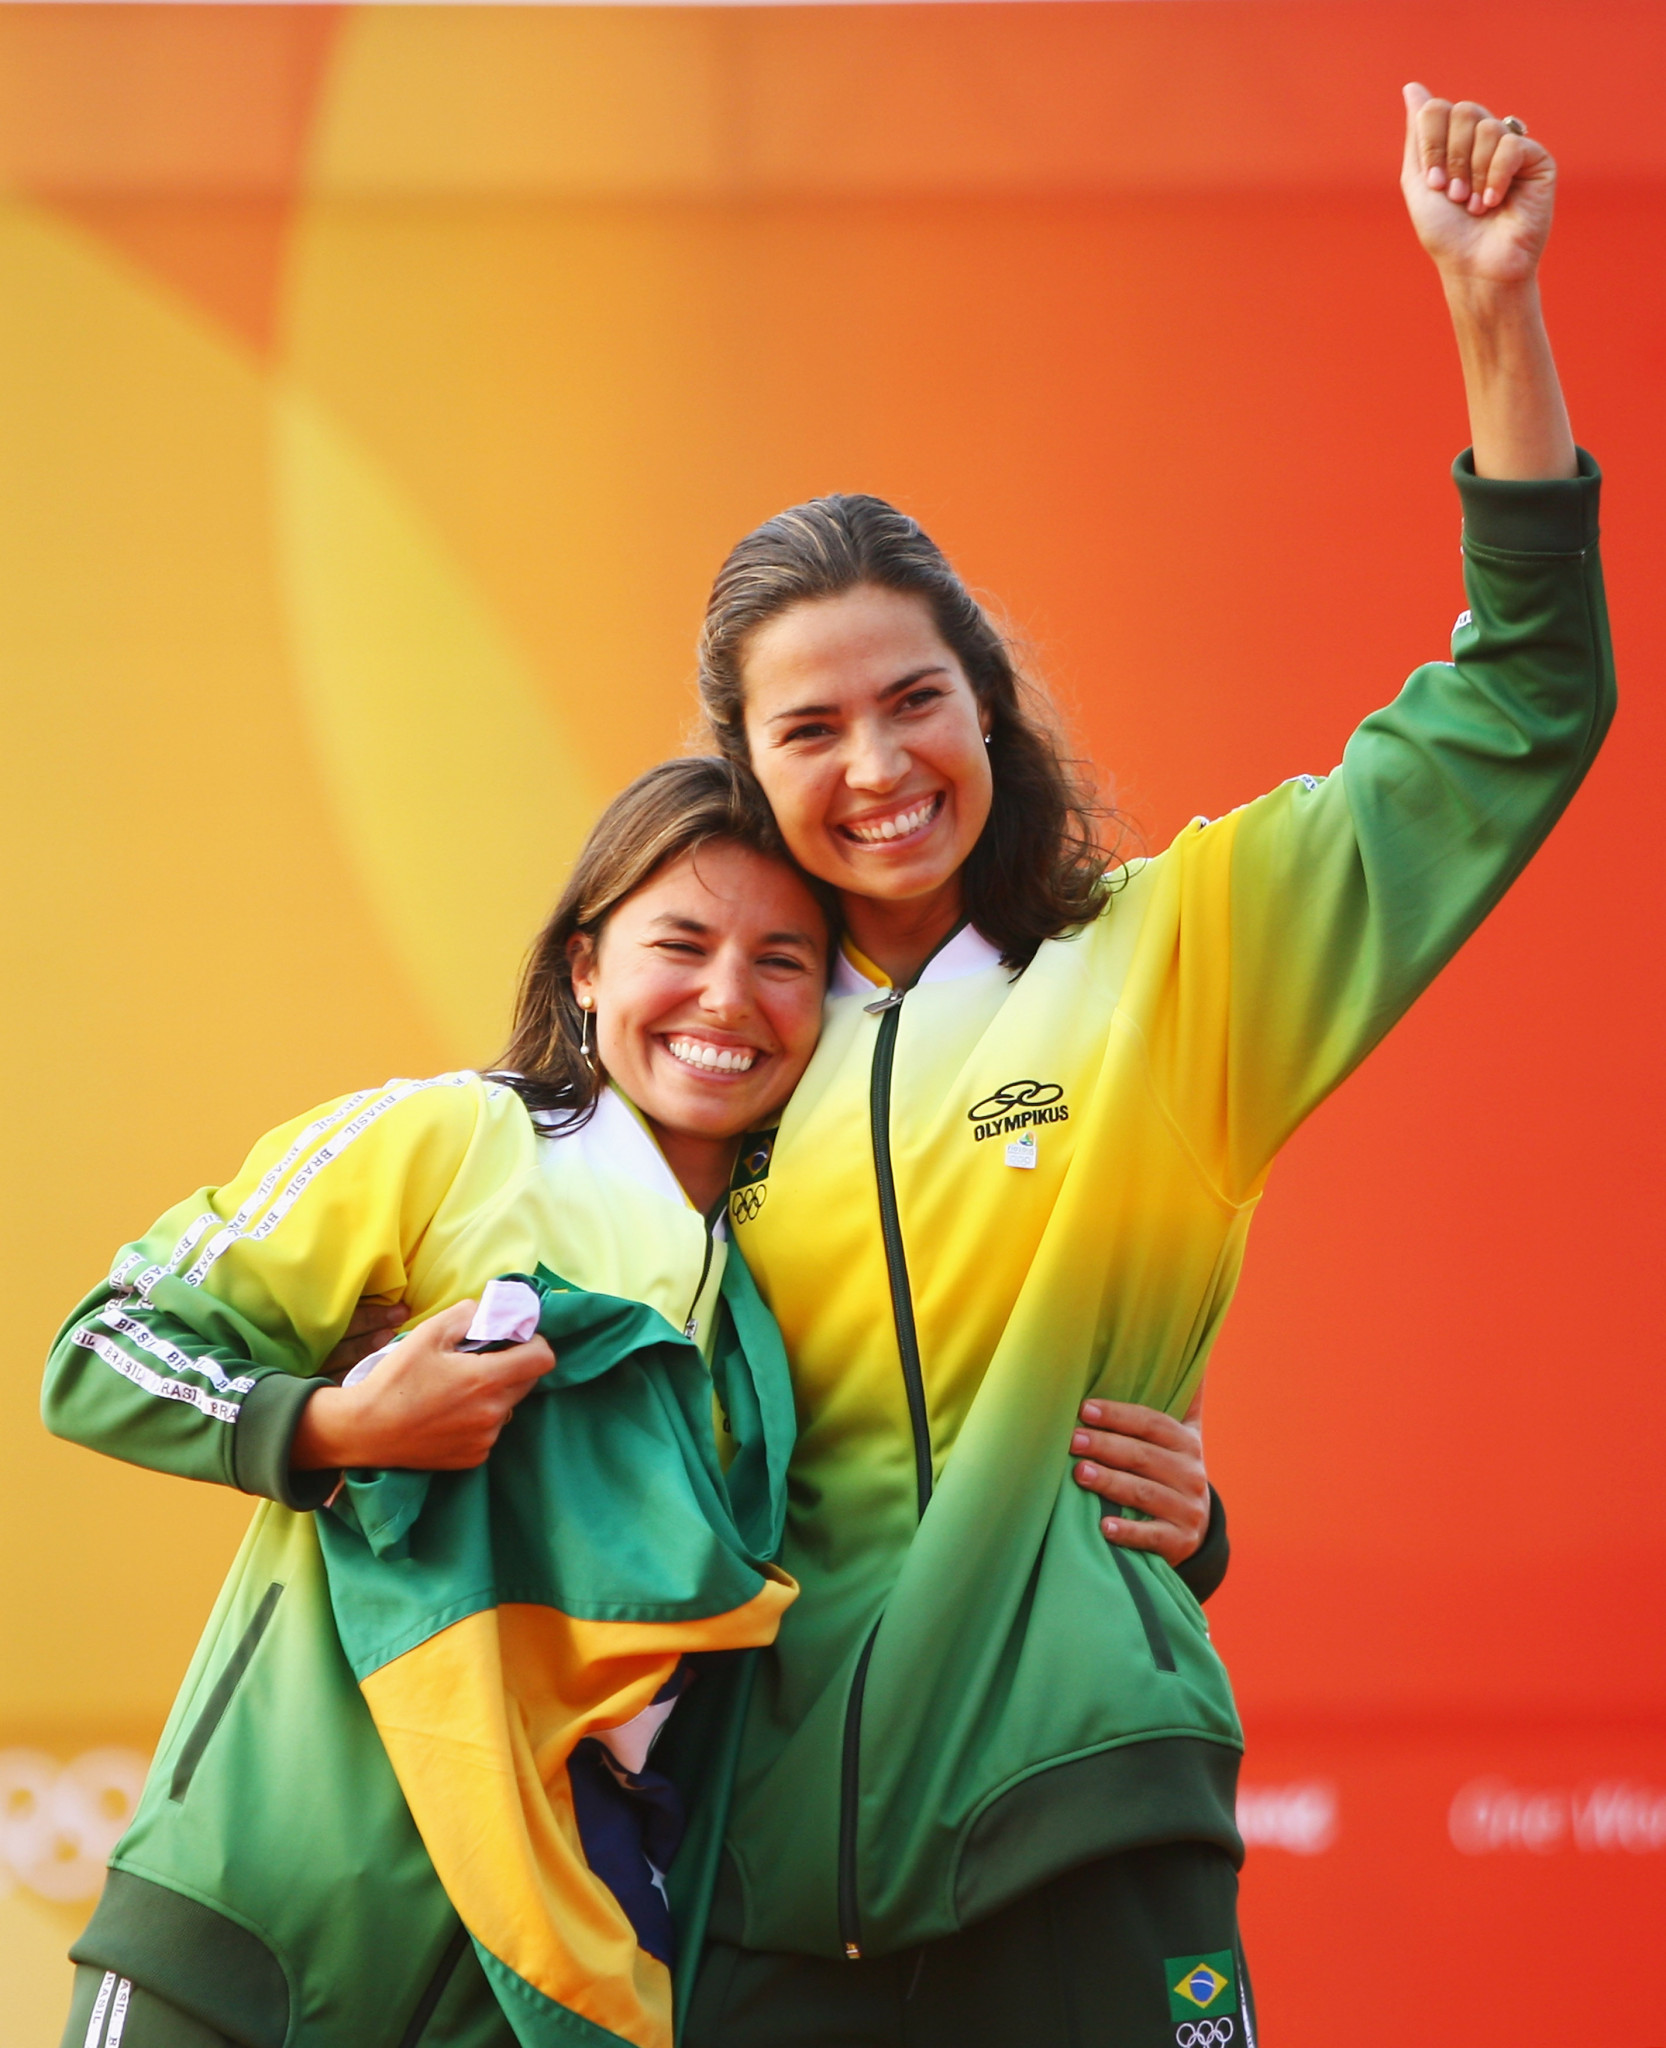 Isabel Swan, right, celebrates winning an Olympic sailing medal in the 470 class with Fernanda Oliveira at Beijing 2008 ©Getty Images